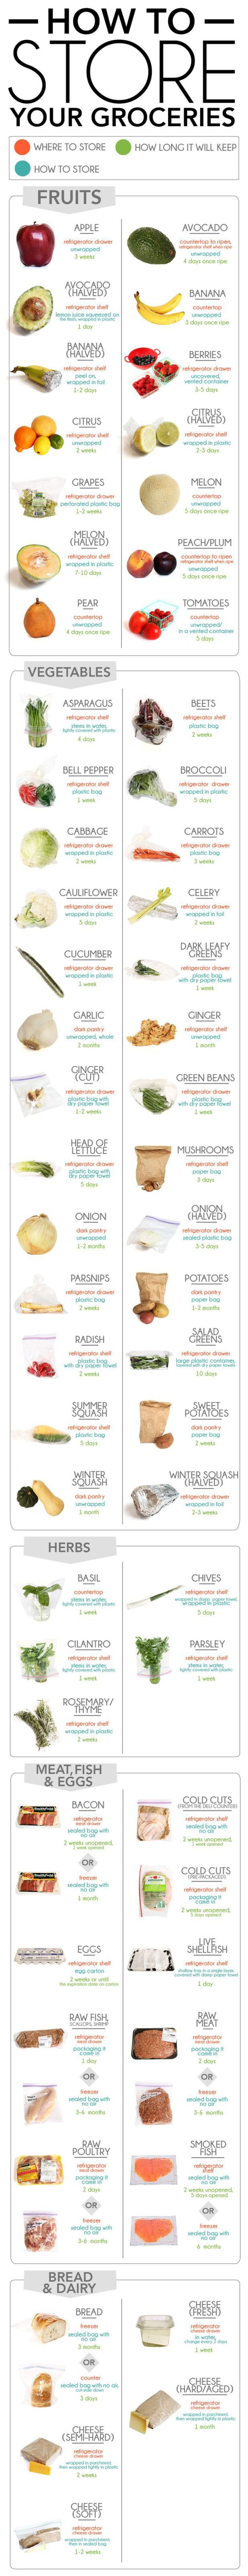 This Is Exactly How To Store Your Groceries Everything you need to know about where and how to store the food in your kitchen. posted on Sept. 30, 2014, Christine Byrne BuzzFeed Staff JennyChang BuzzFeed Staff - WorkLAD - Lad Banter Funny LAD Pics